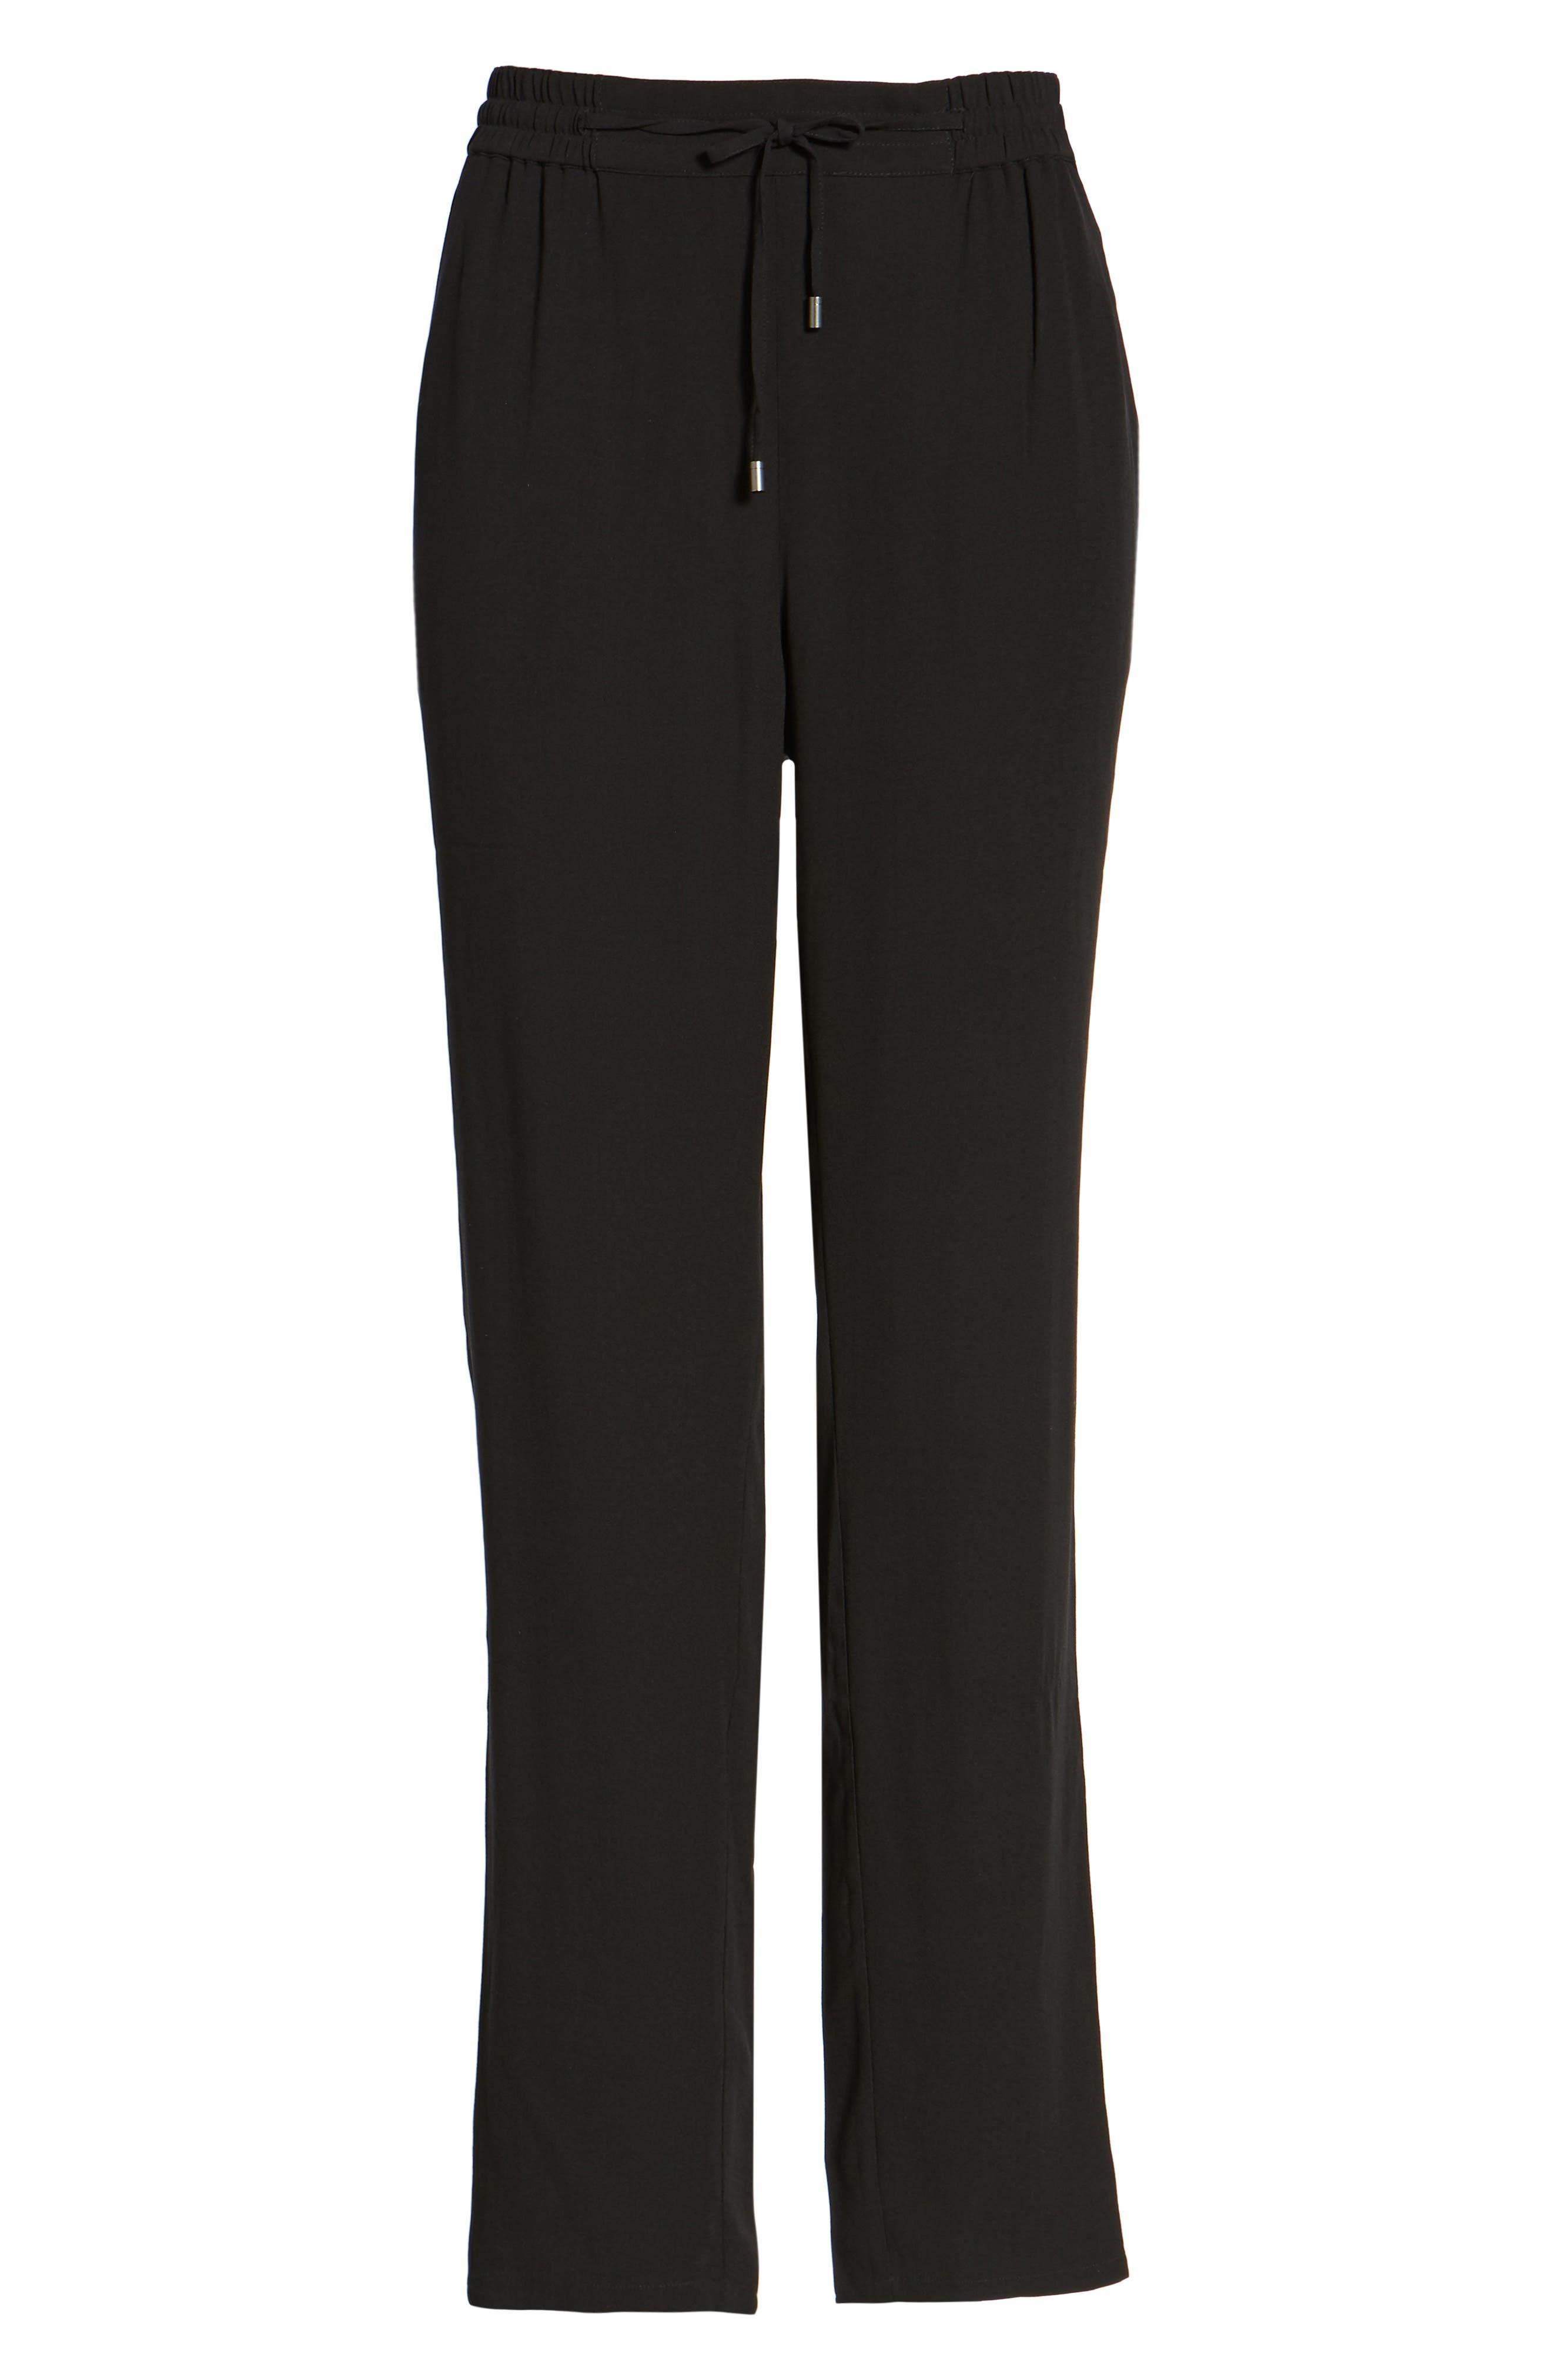 EILEEN FISHER, Silk Crepe Ankle Pants, Main thumbnail 1, color, 001